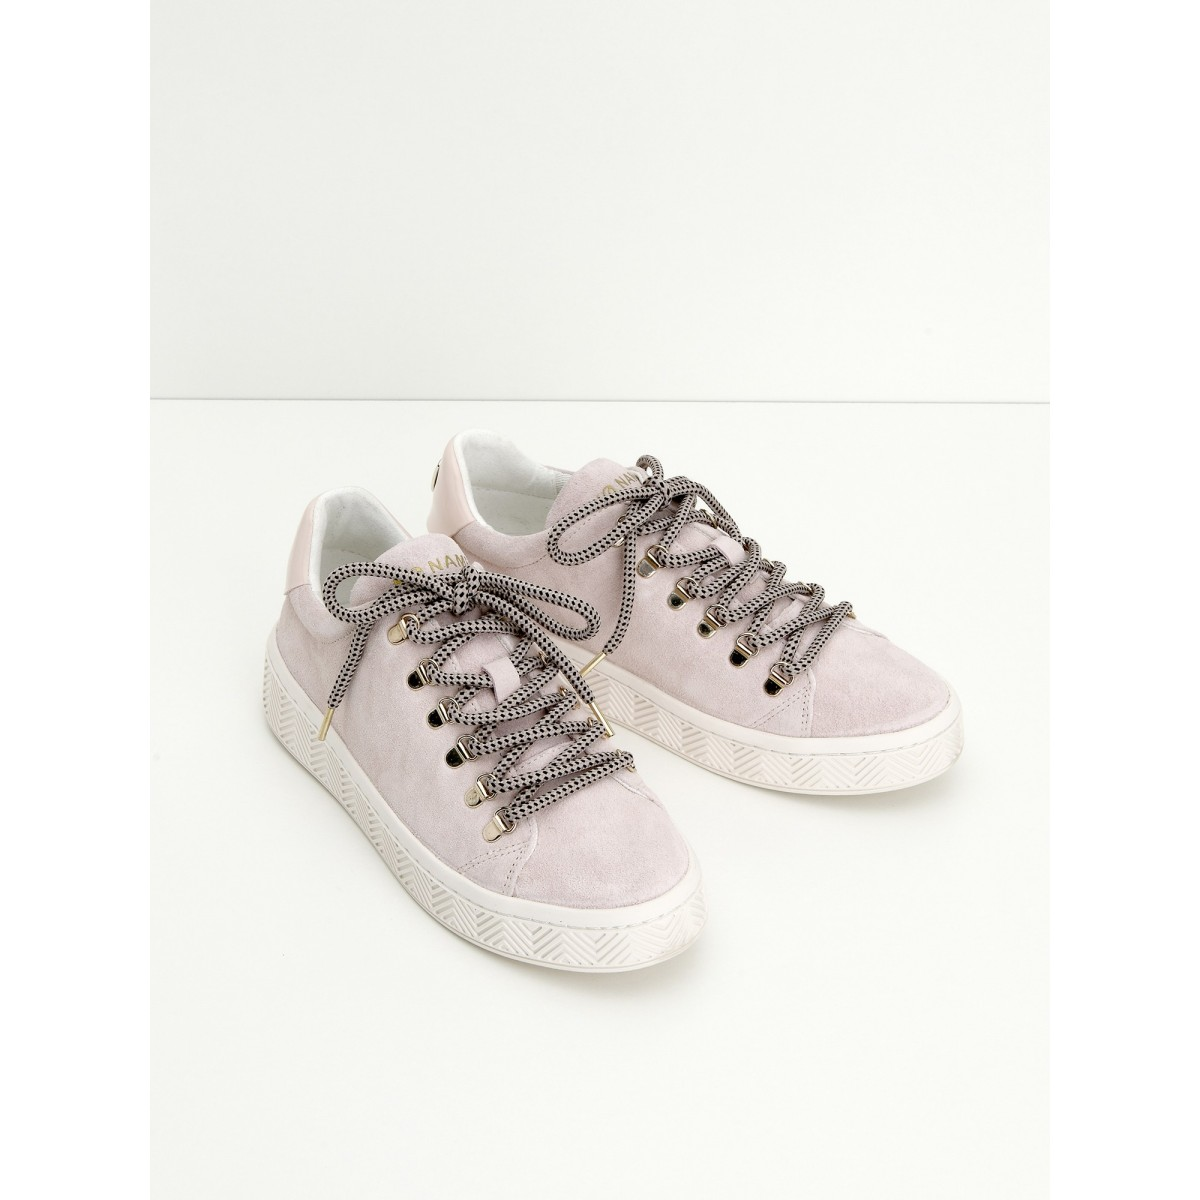 No Name GINGER SNEAKER - SUEDE - POUDRE SOLE WHITE